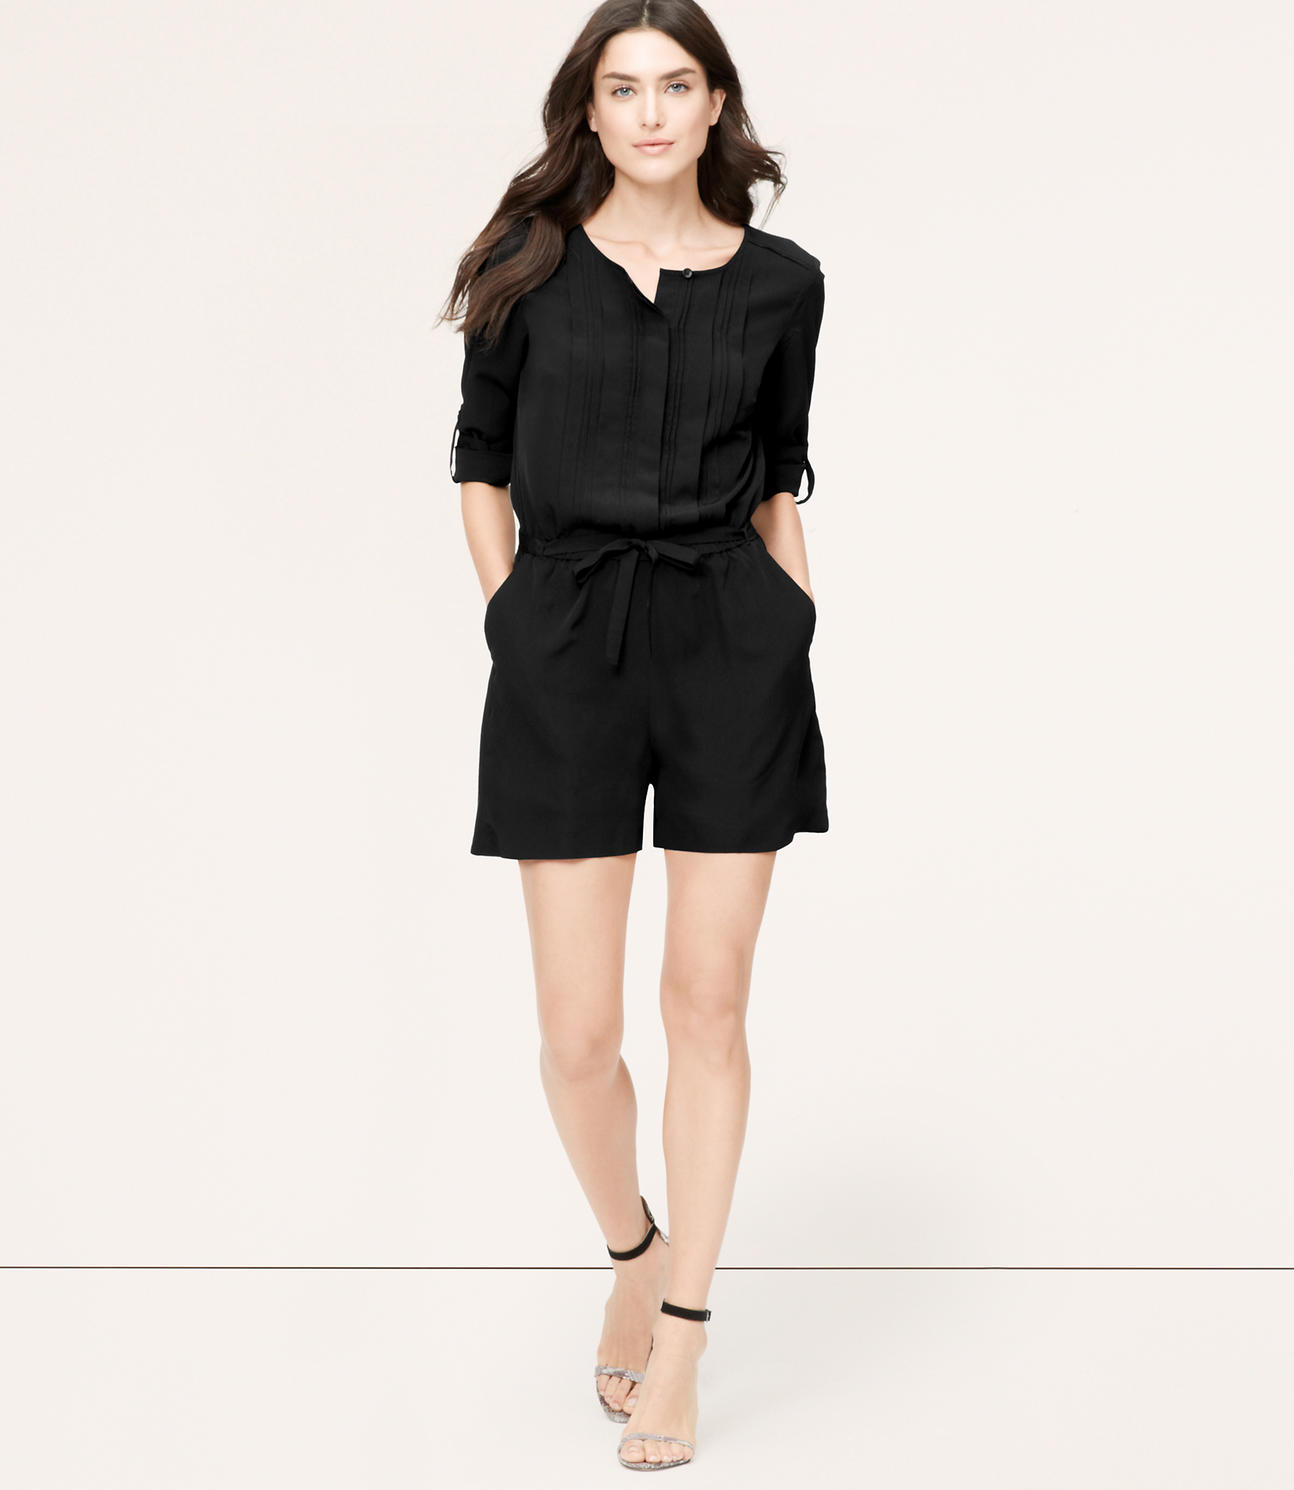 Primary Image of Pleated Romper with 4 Inch Inseam